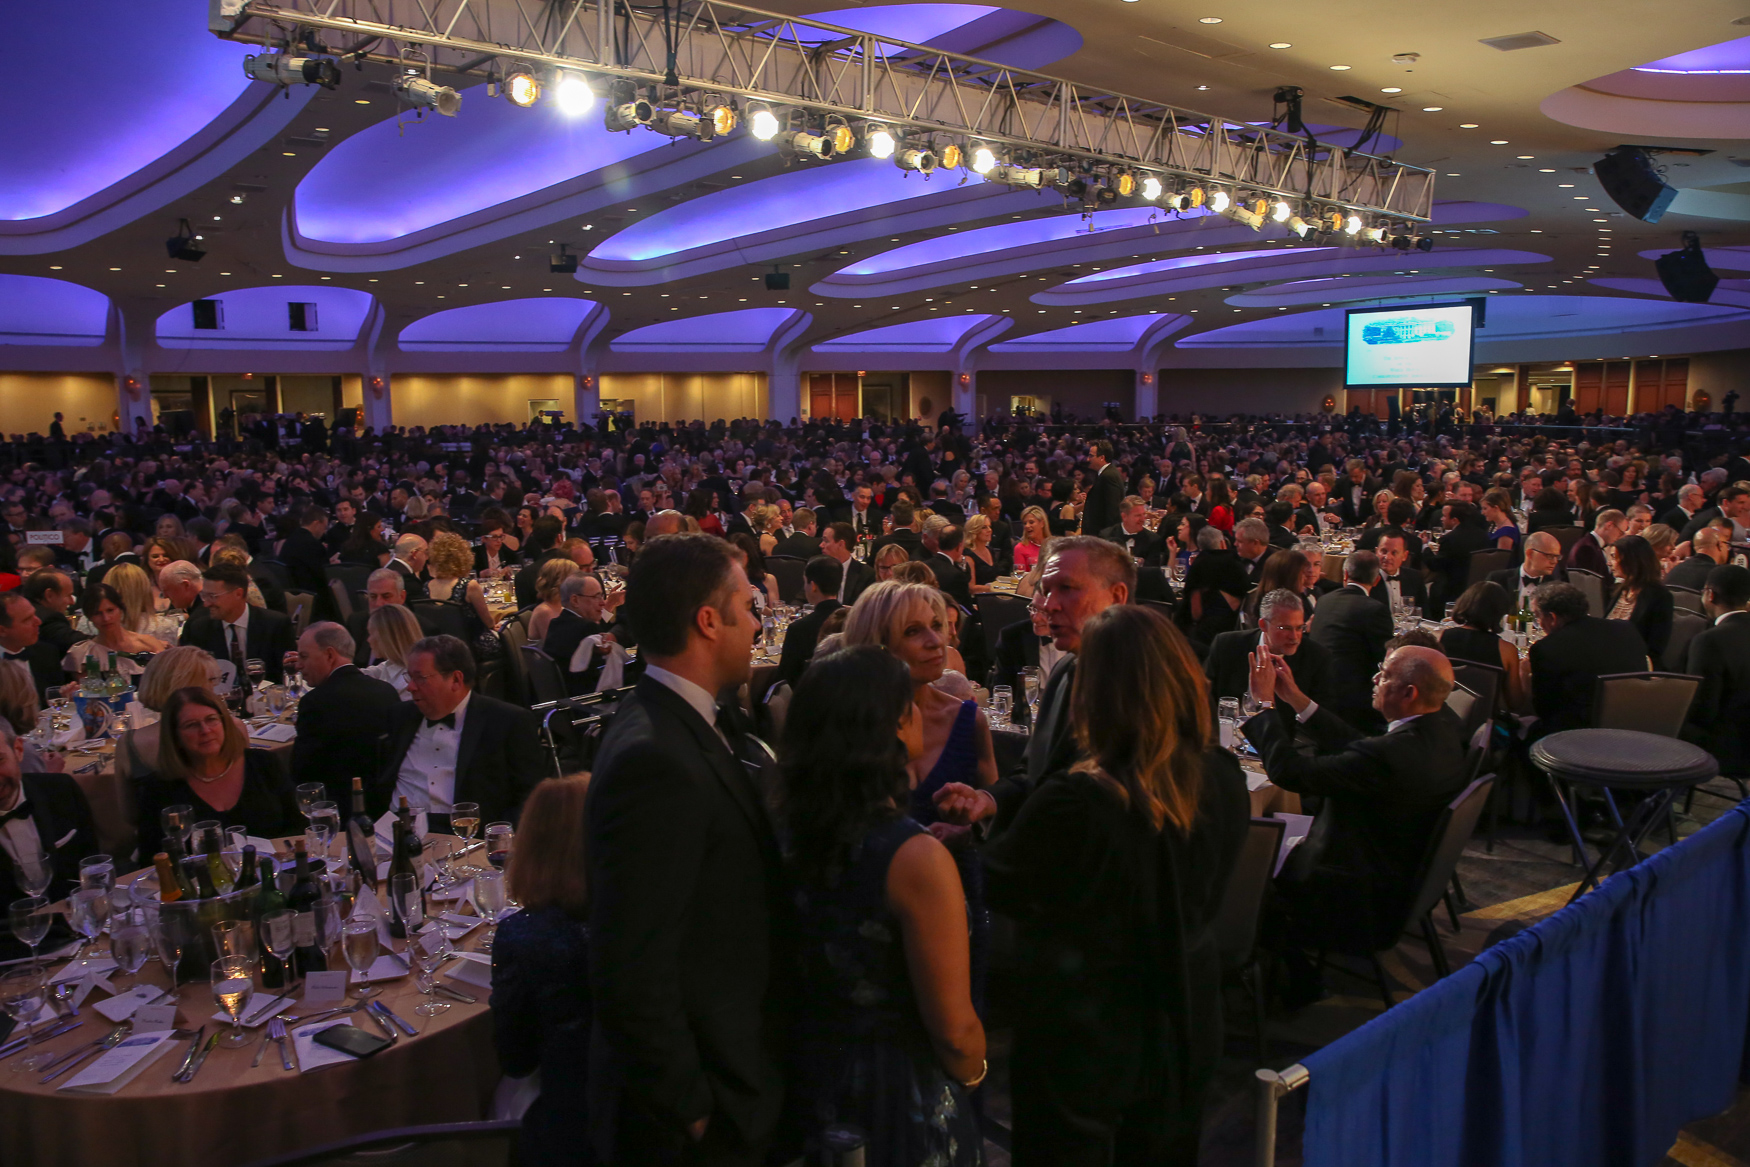 The Washington Hilton was packed for the 2018 White House Correspondents' Dinner on April 28. Hundreds of media luminaries, activists and politicians gathered to honor the work of journalists and the remember the importance of the First Amendment. Here's what it was like inside.{ }(Amanda Andrade-Rhoades/DC Refined)